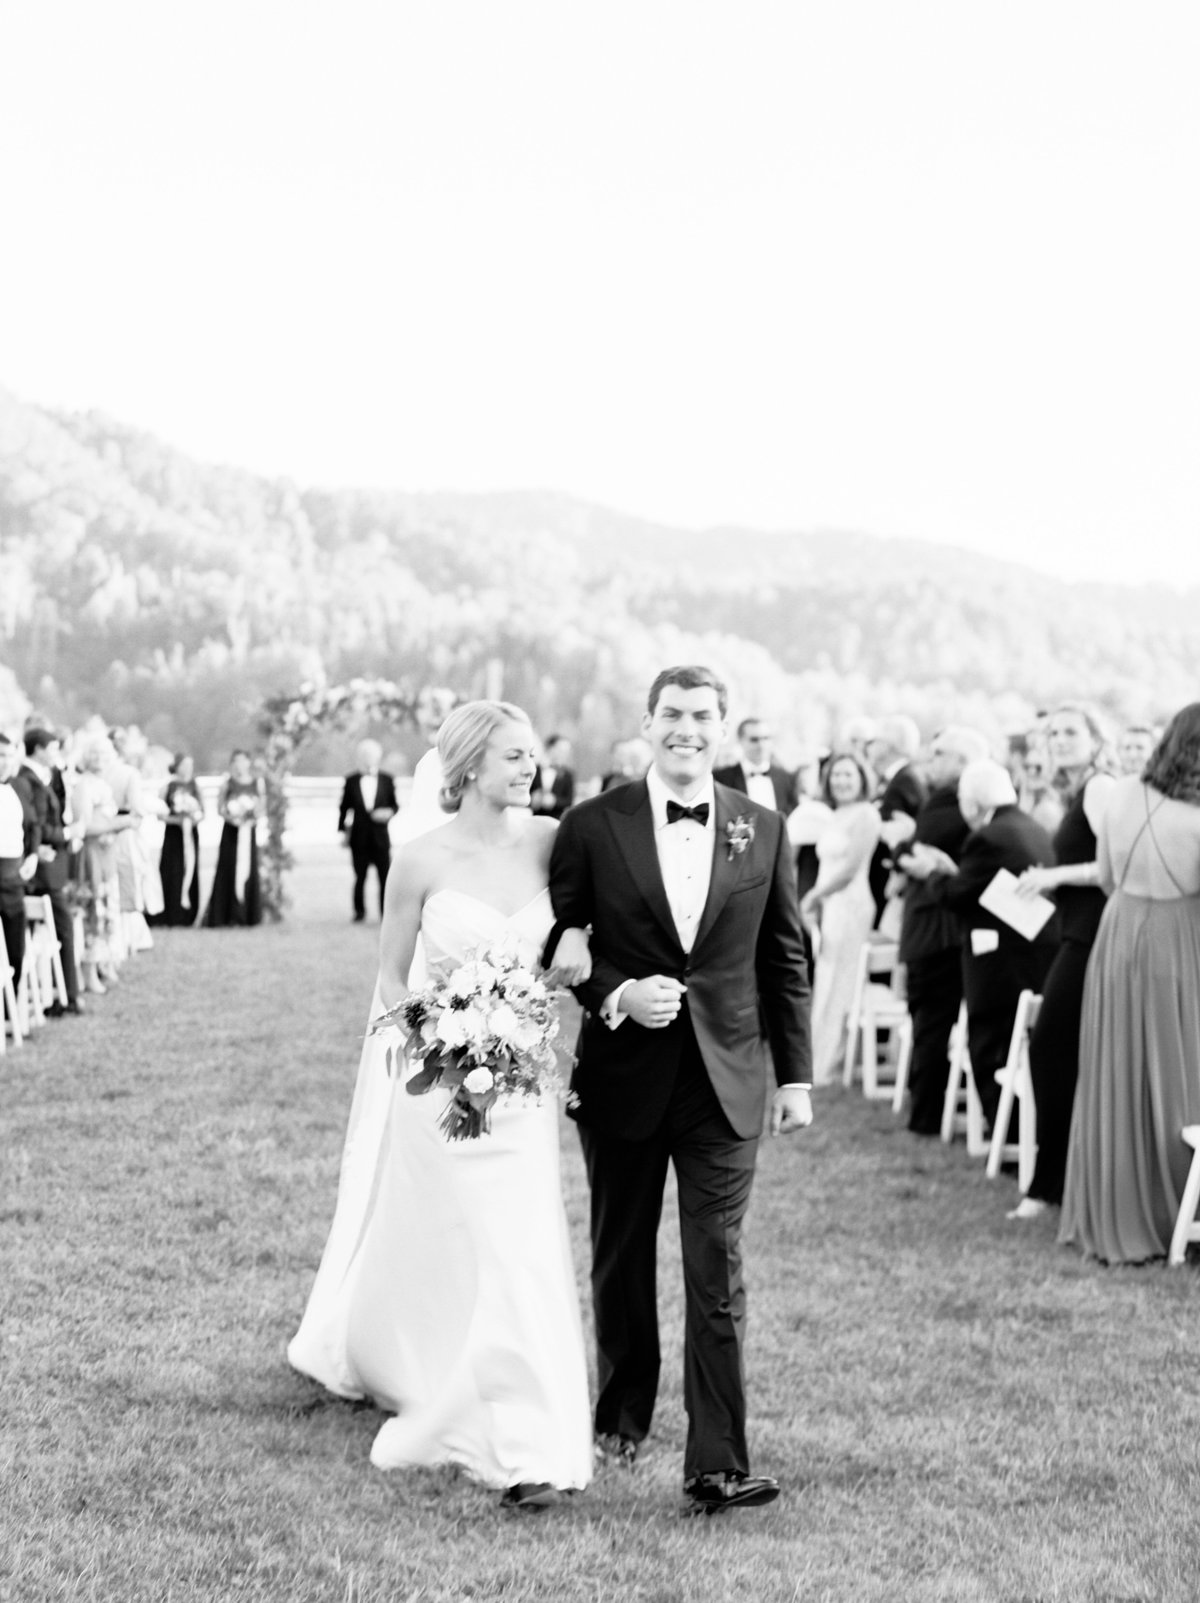 MelissaSchollaert-DestWeddings-086